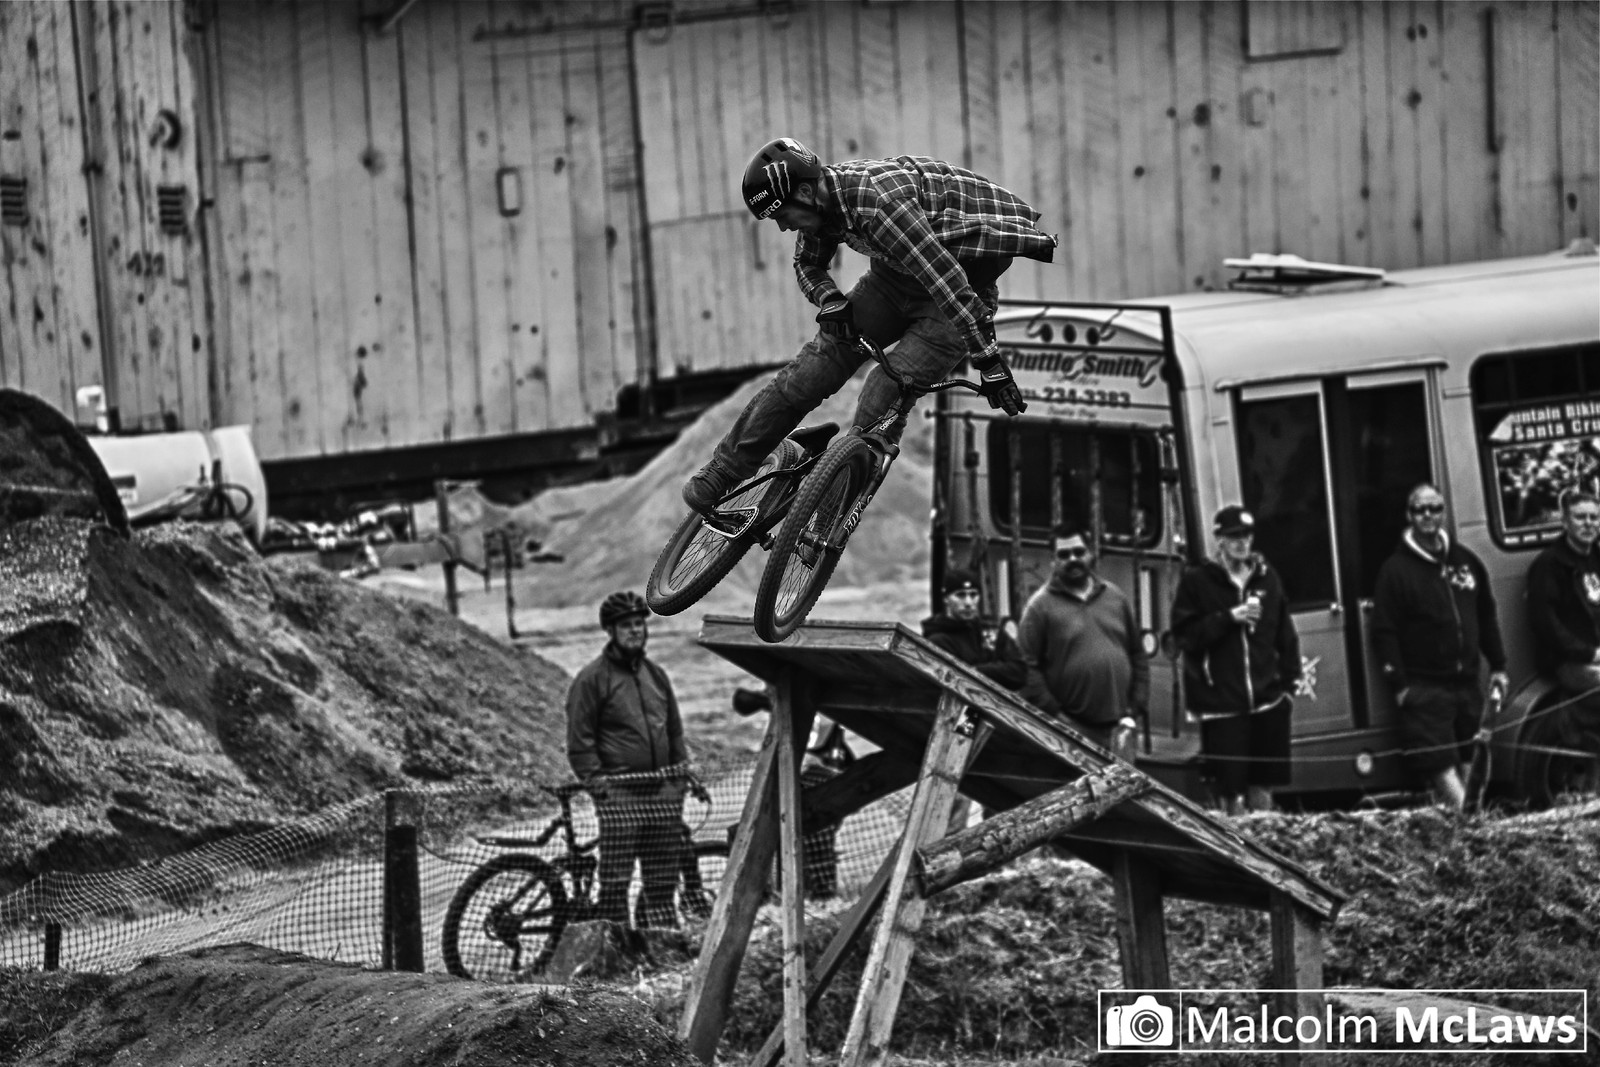 Jamie whipHDR - Malcolm Mclaws - Mountain Biking Pictures - Vital MTB